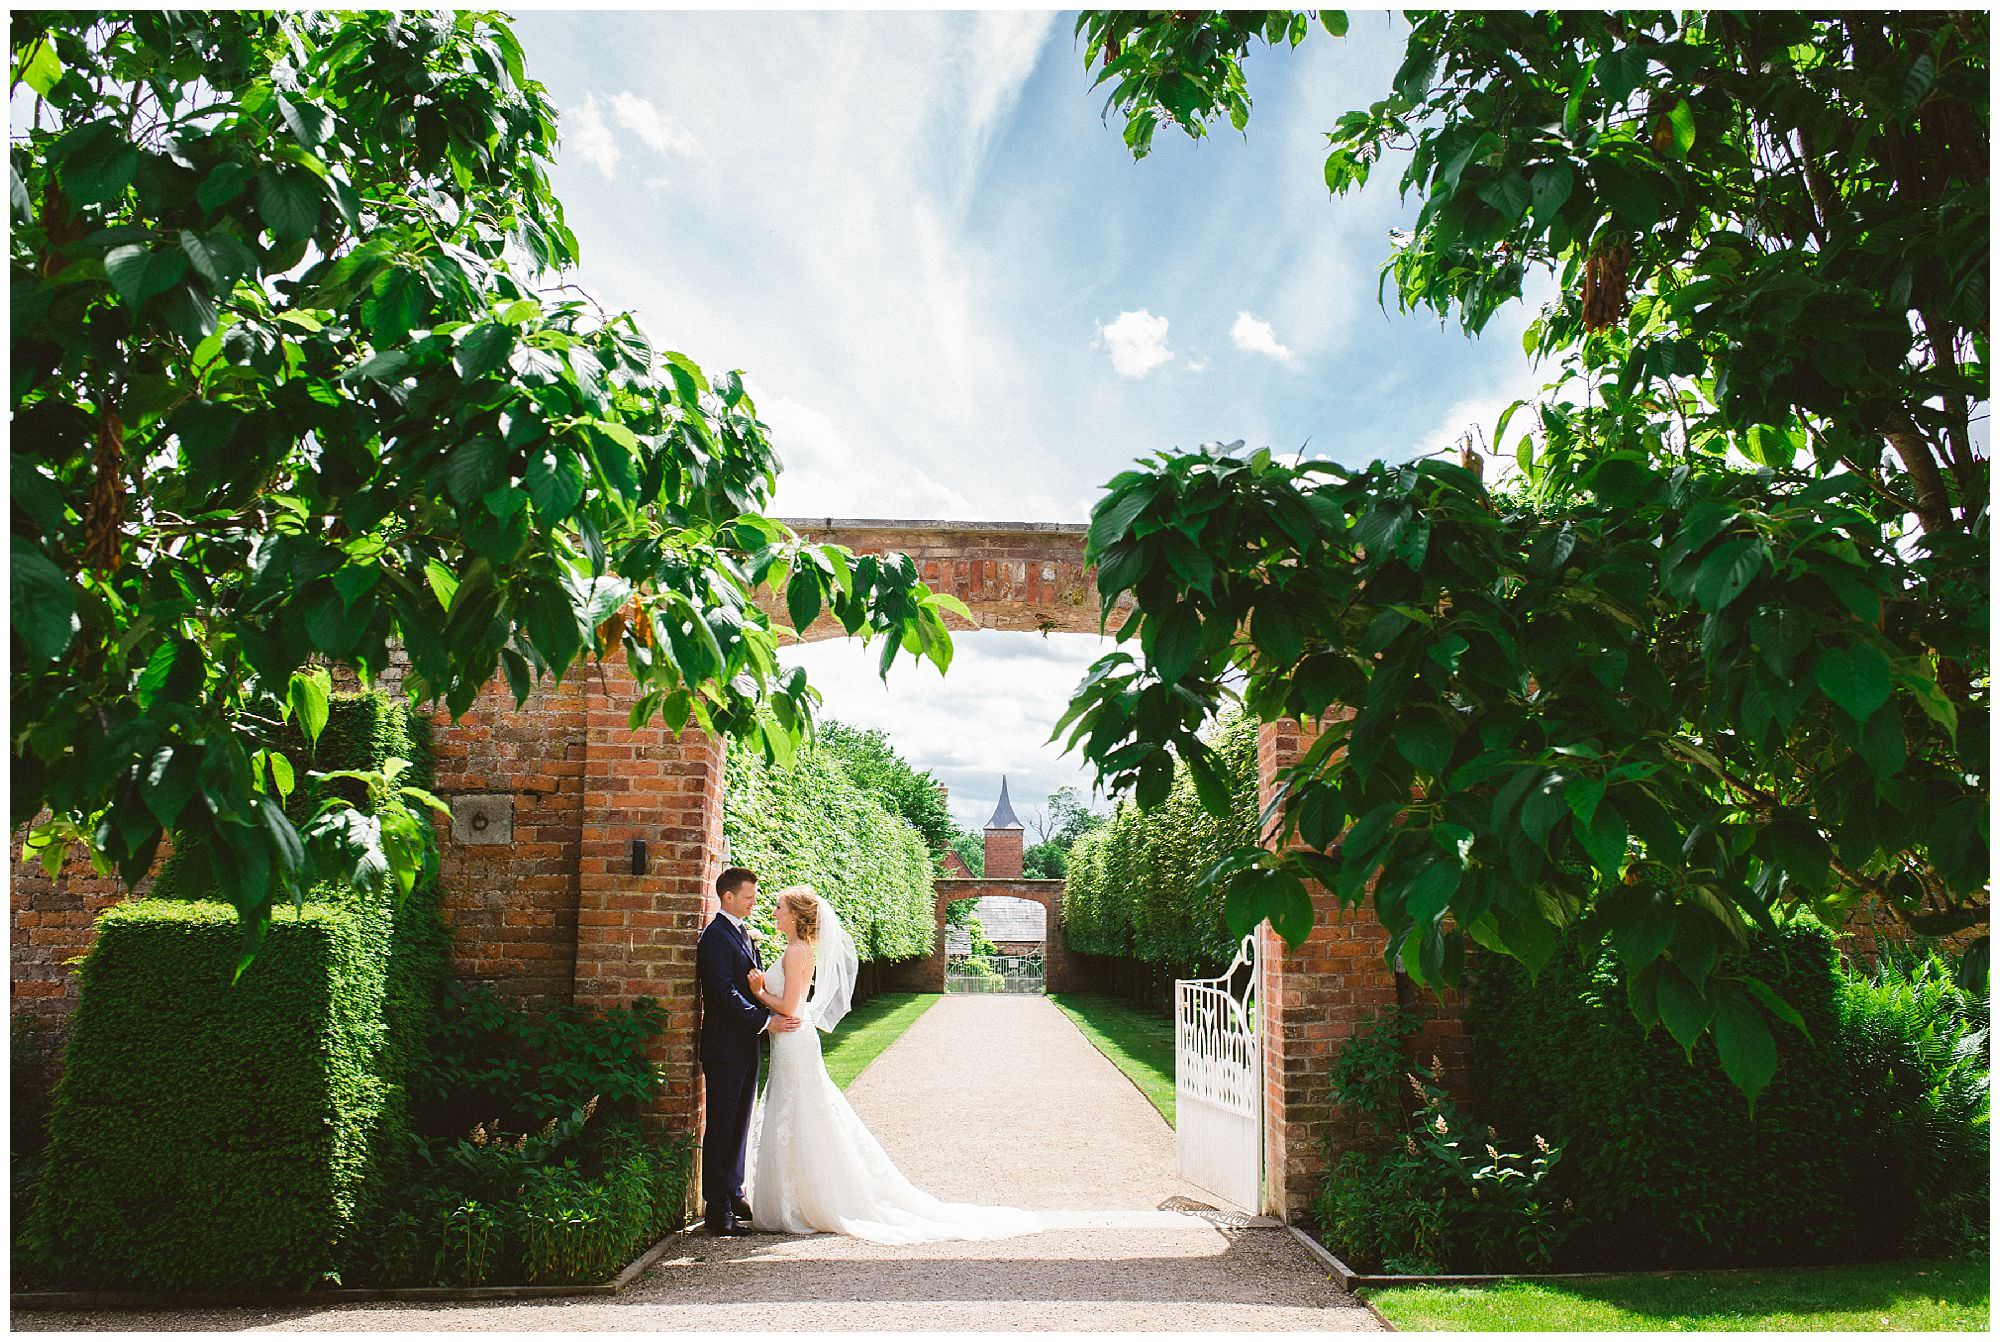 traditional portrait of bride and groom in gardens at Combermere Abbey in England by destination wedding photographer Ronnie Lee Hill Photography